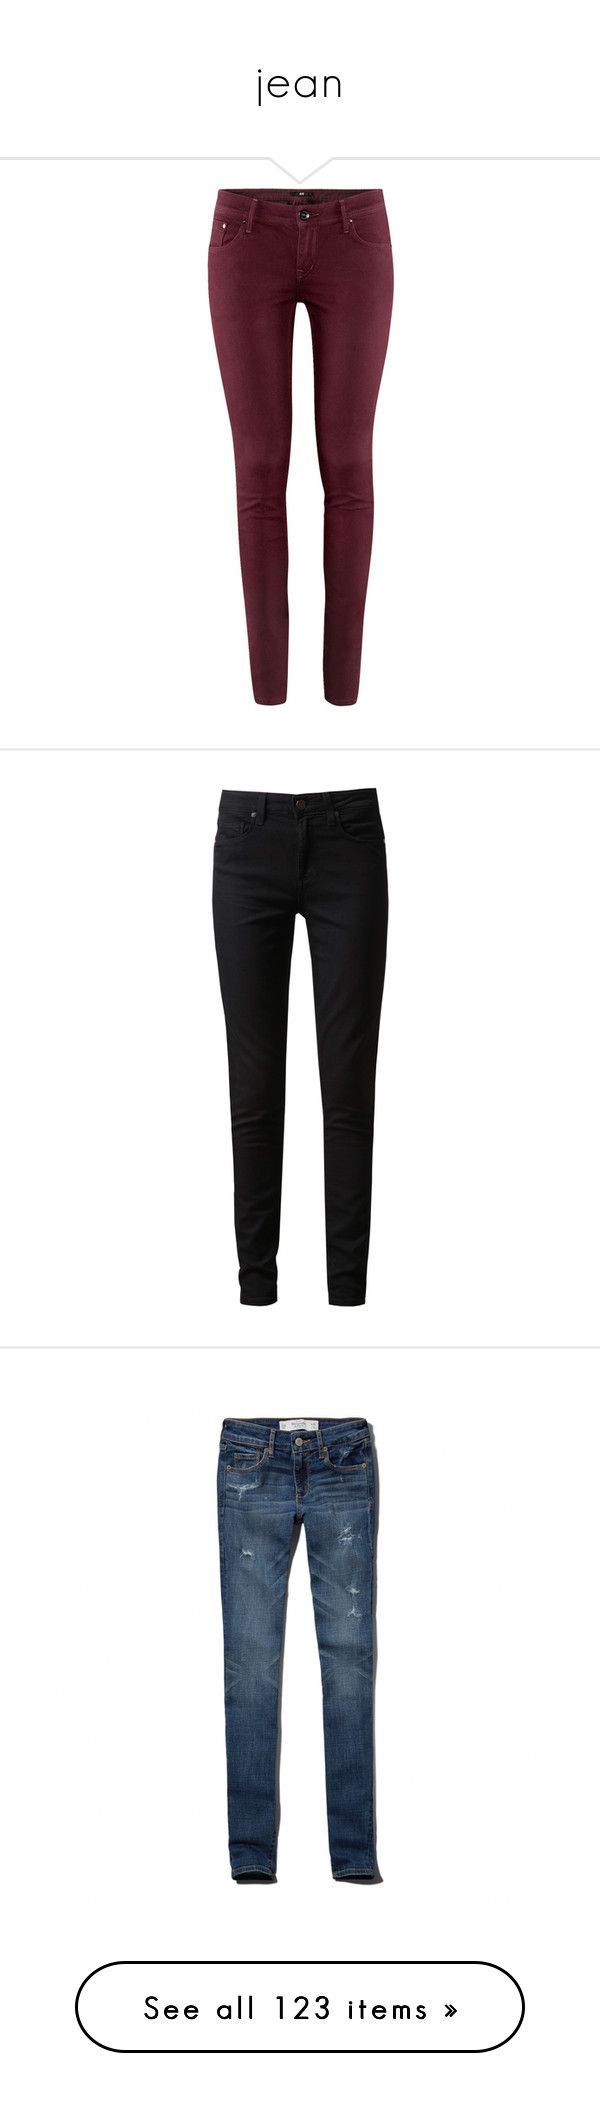 """""""jean"""" by morongo ❤ liked on Polyvore featuring jeans, pants, bottoms, pantalones, calças, plum, h&m skinny jeans, 5 pocket jeans, plum jeans and skinny fit jeans"""